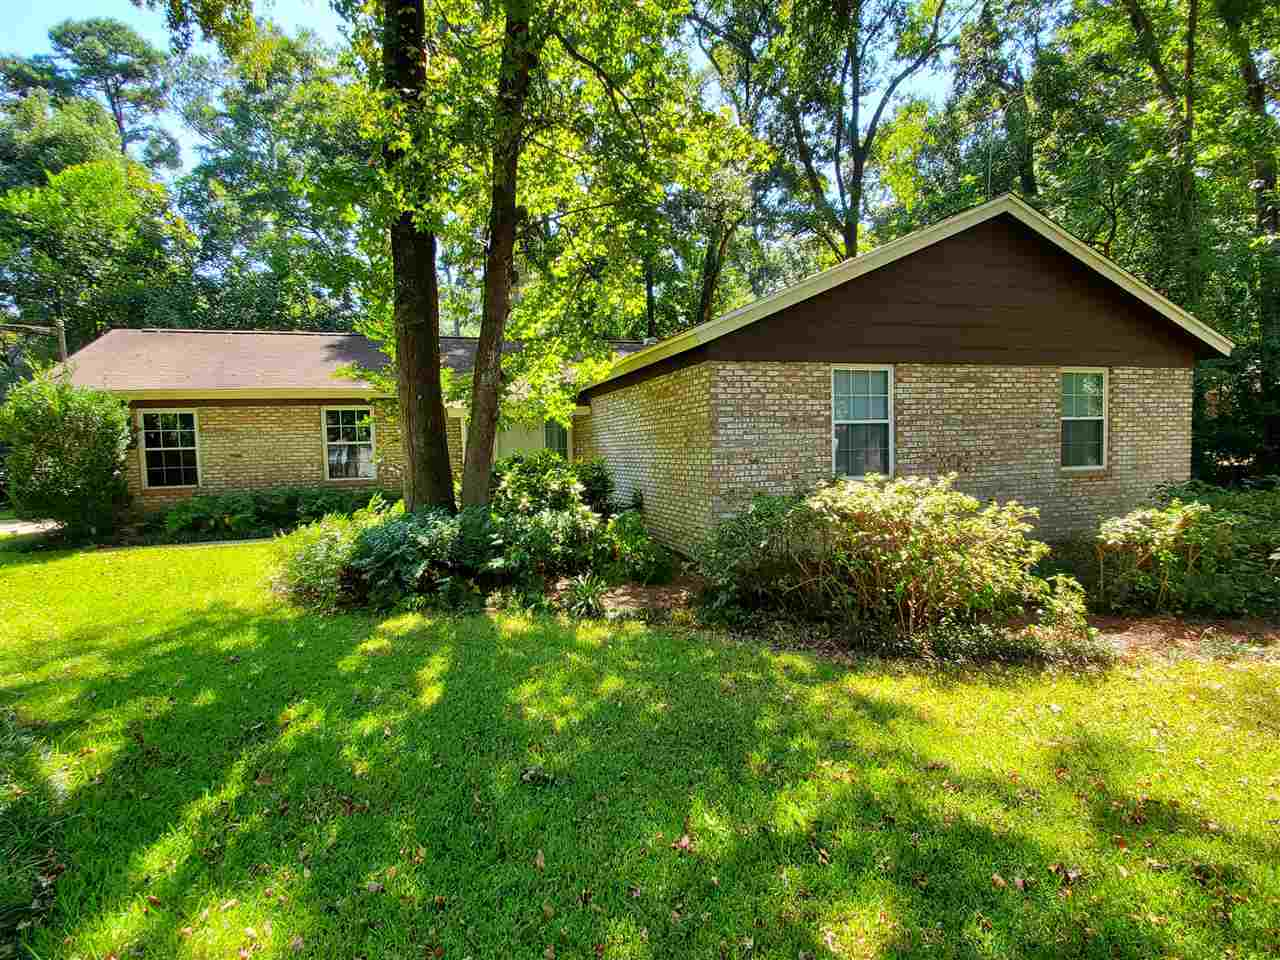 $174,900 - 4Br/2Ba -  for Sale in Scenic Hts, Tallahassee